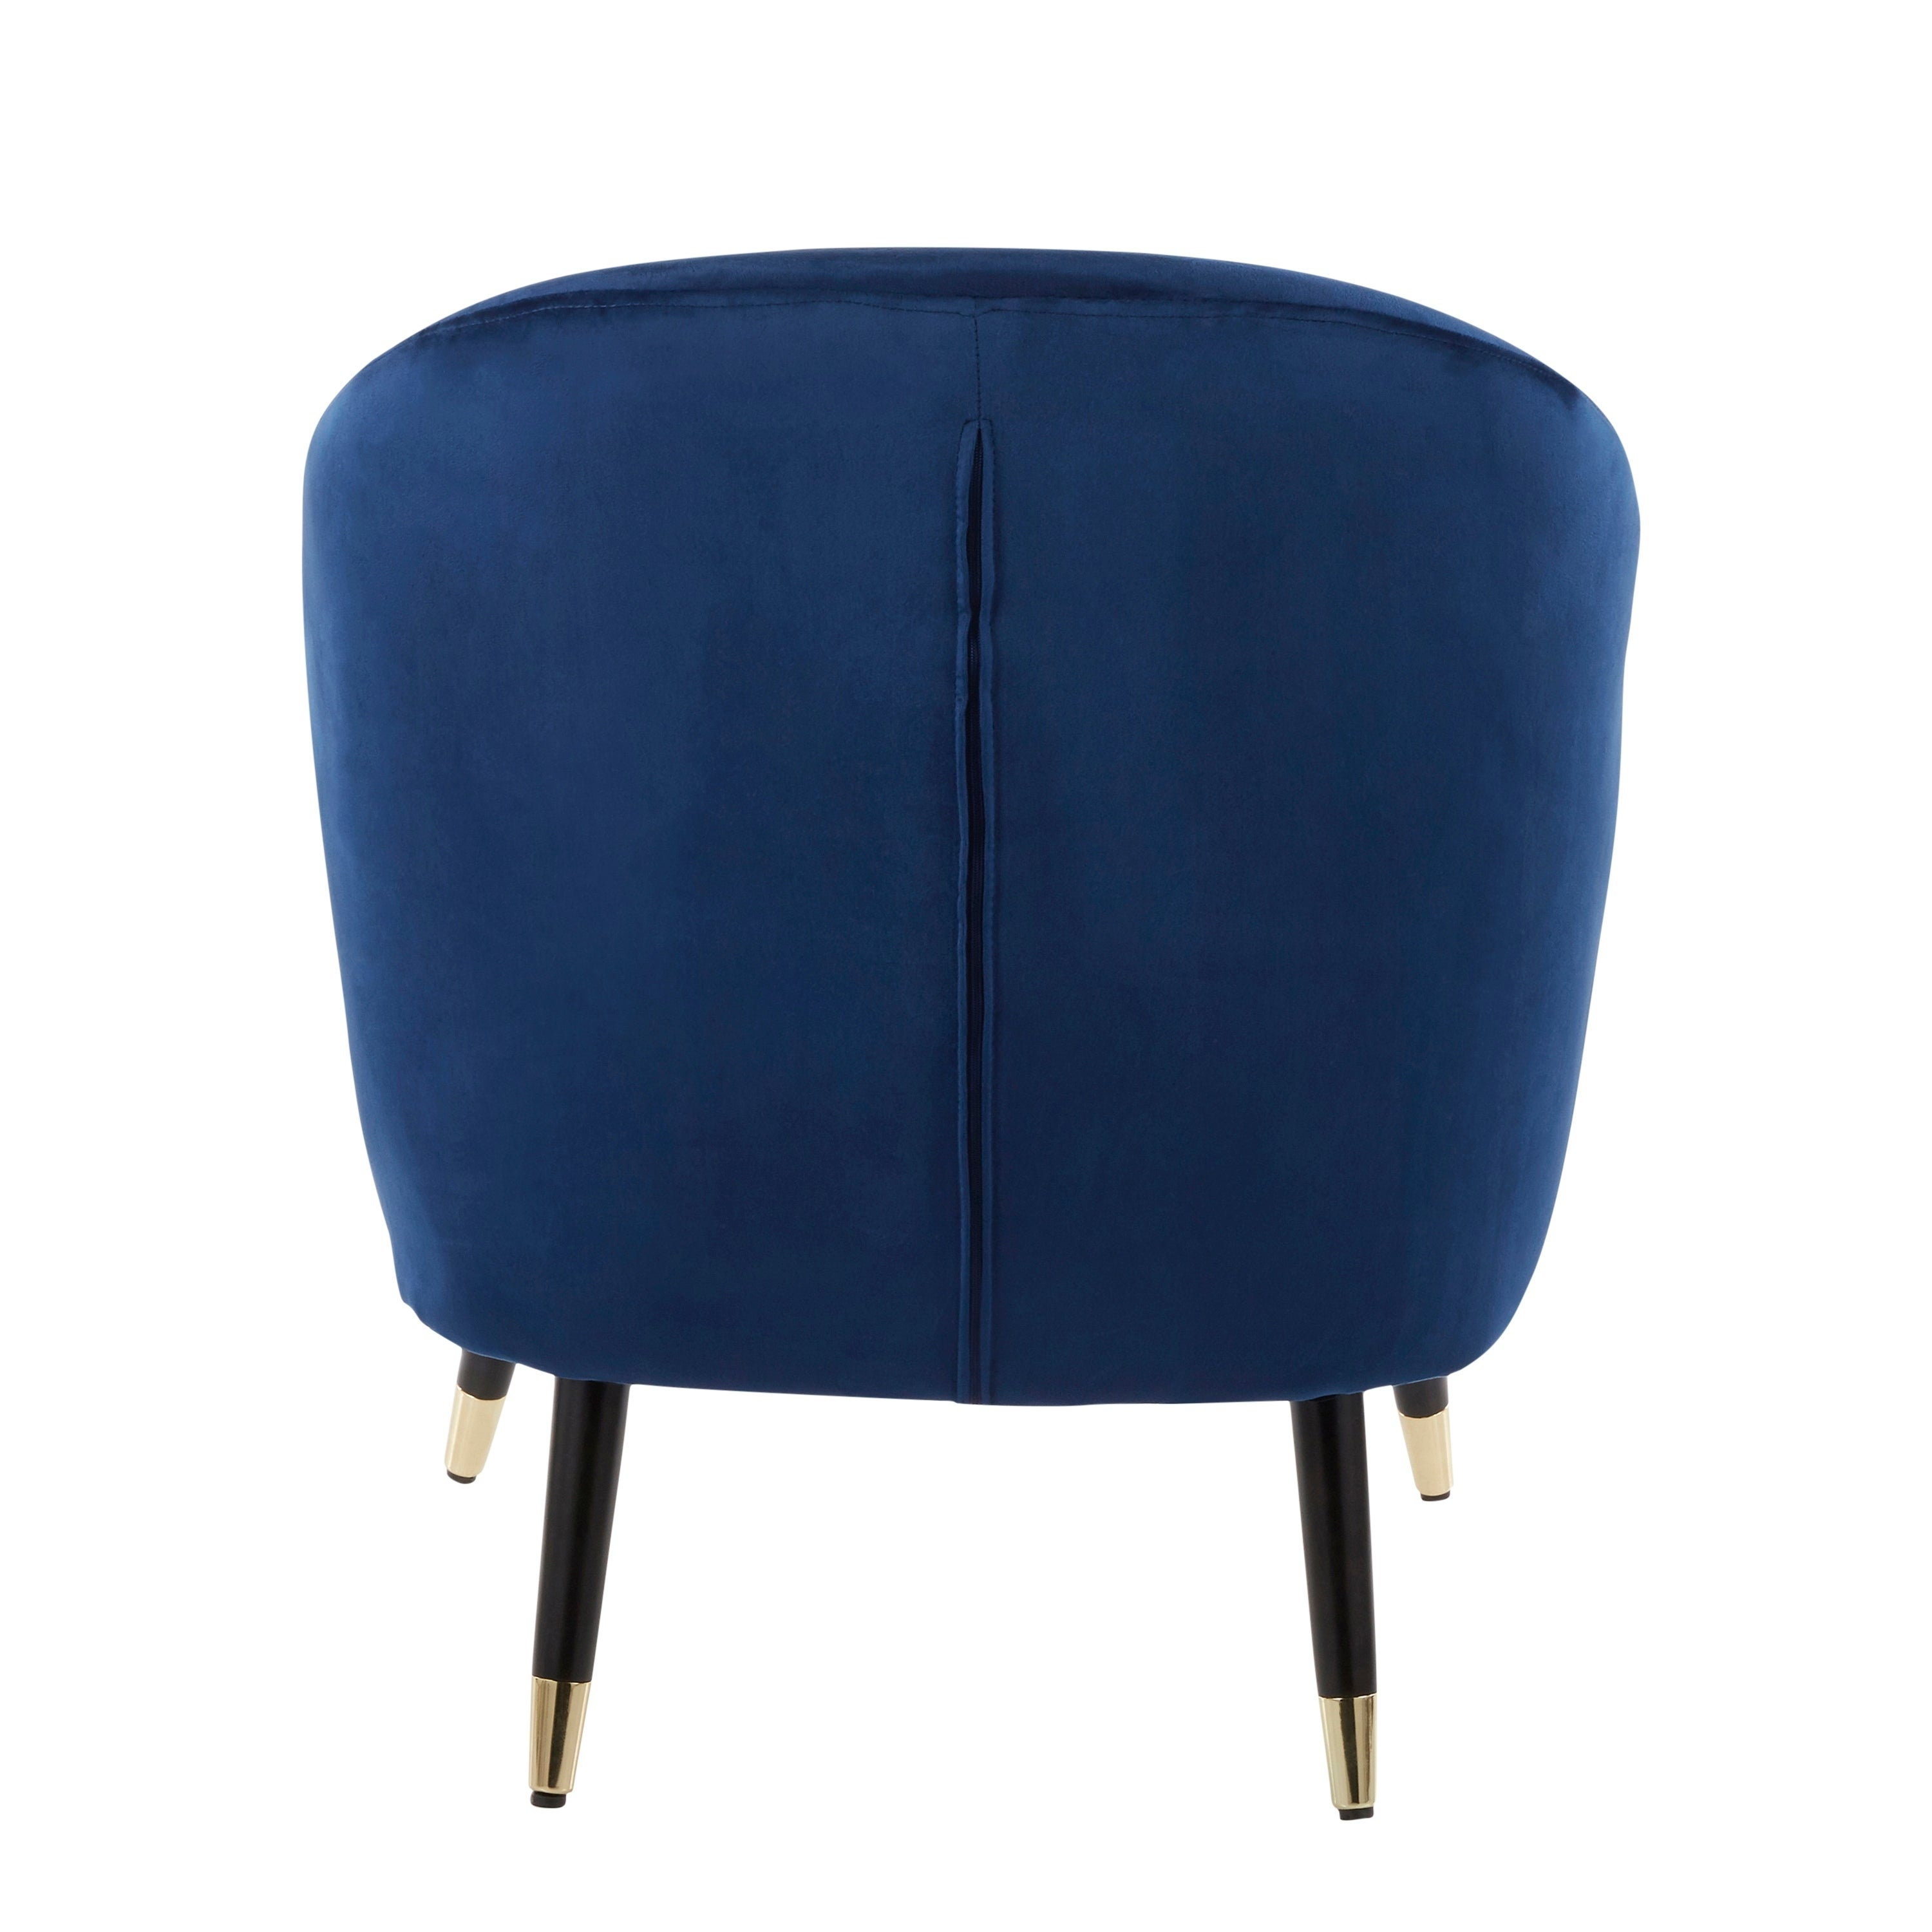 Shop Matisse Contemporary Glam Velvet Upholstered Accent Chair On